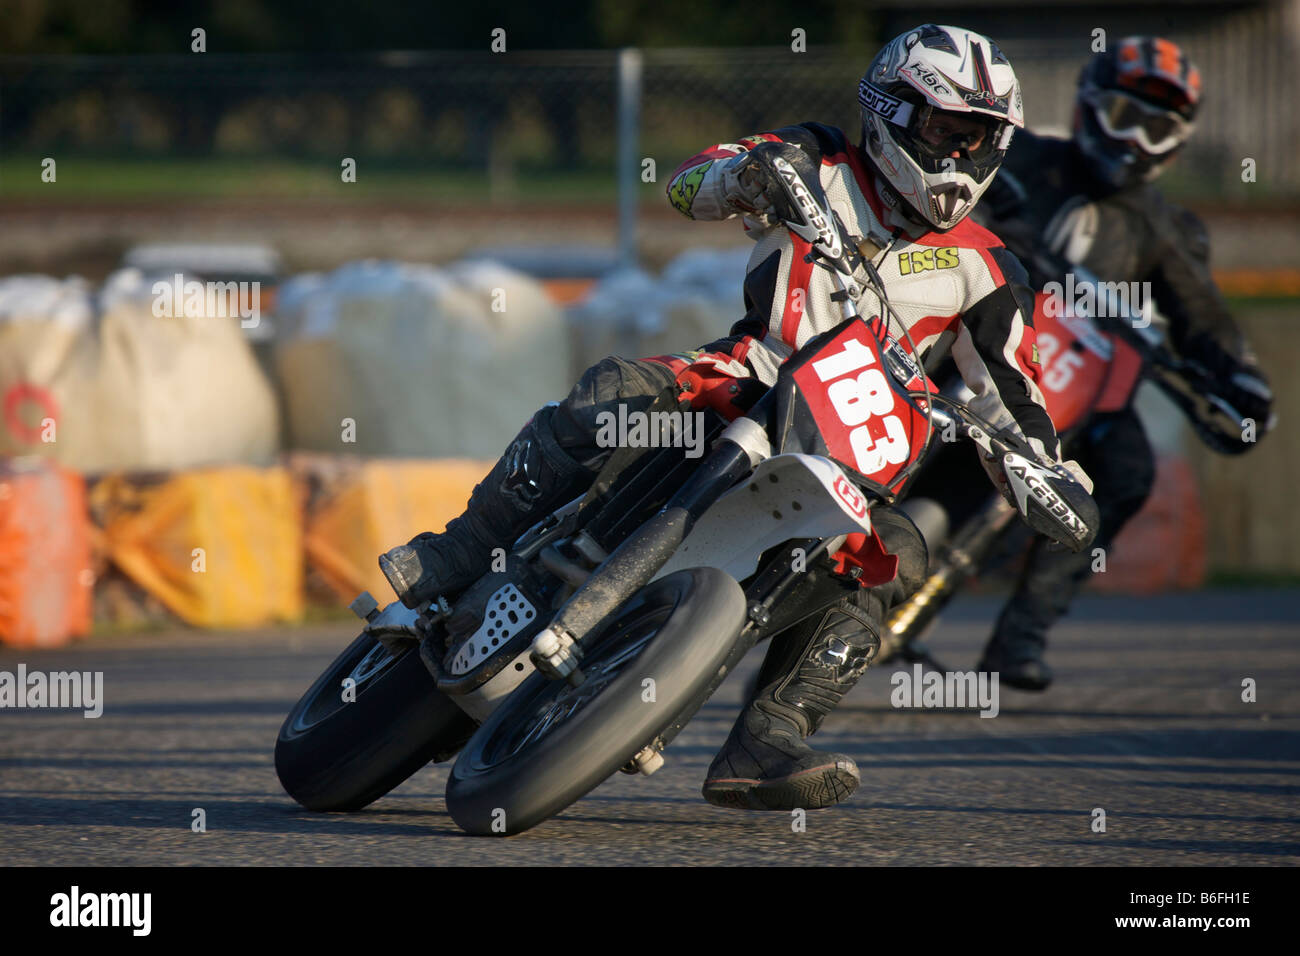 Supermoto racing drivers in oblique position - Stock Image